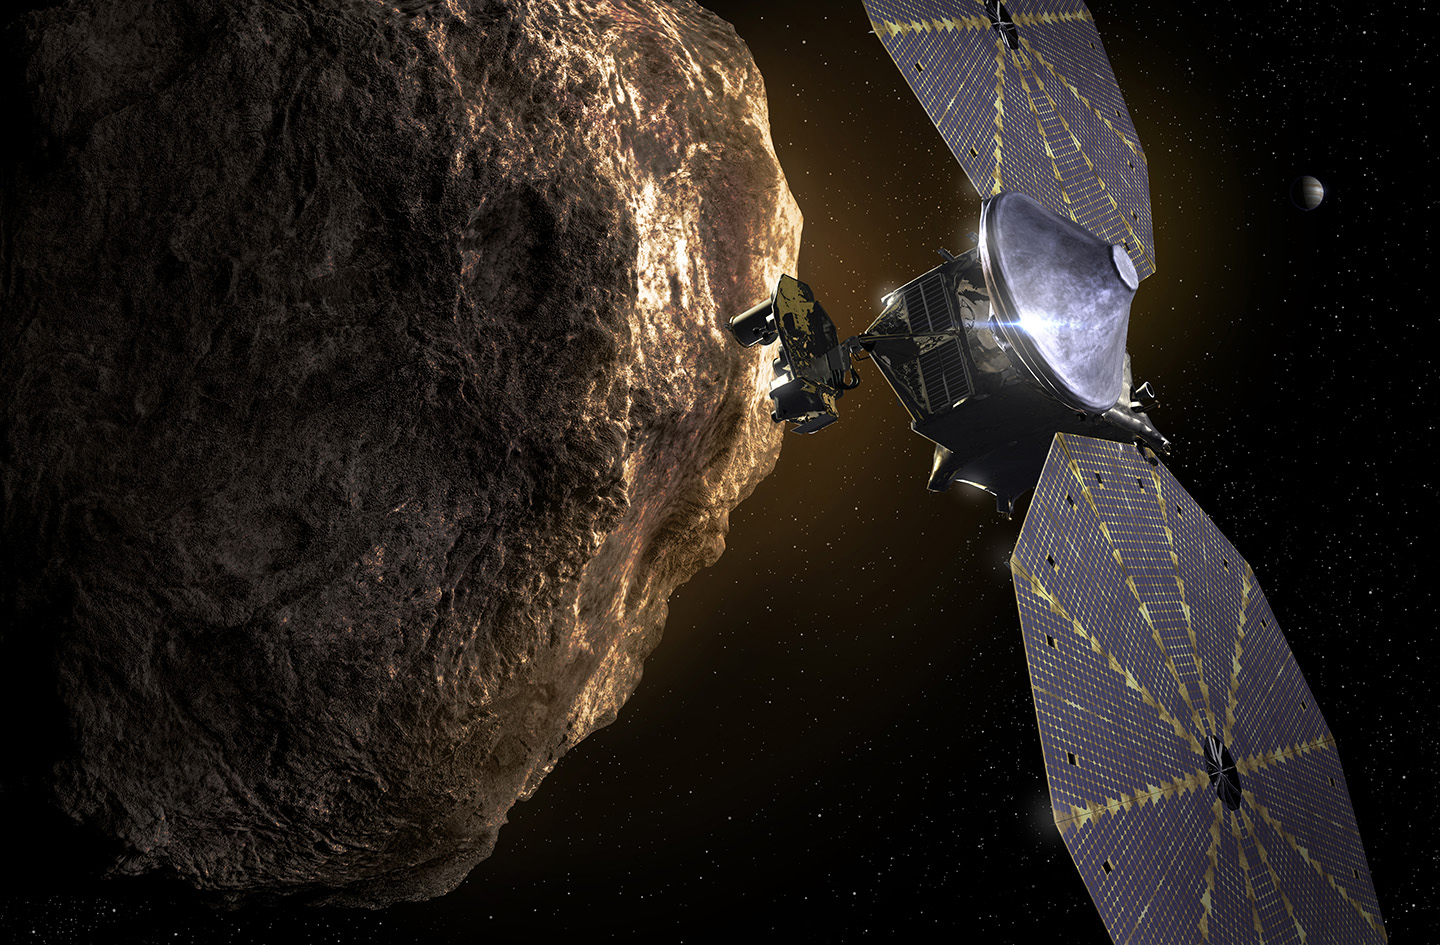 NASA preps Lucy mission to study Jupiter's Trojan asteroid swarms